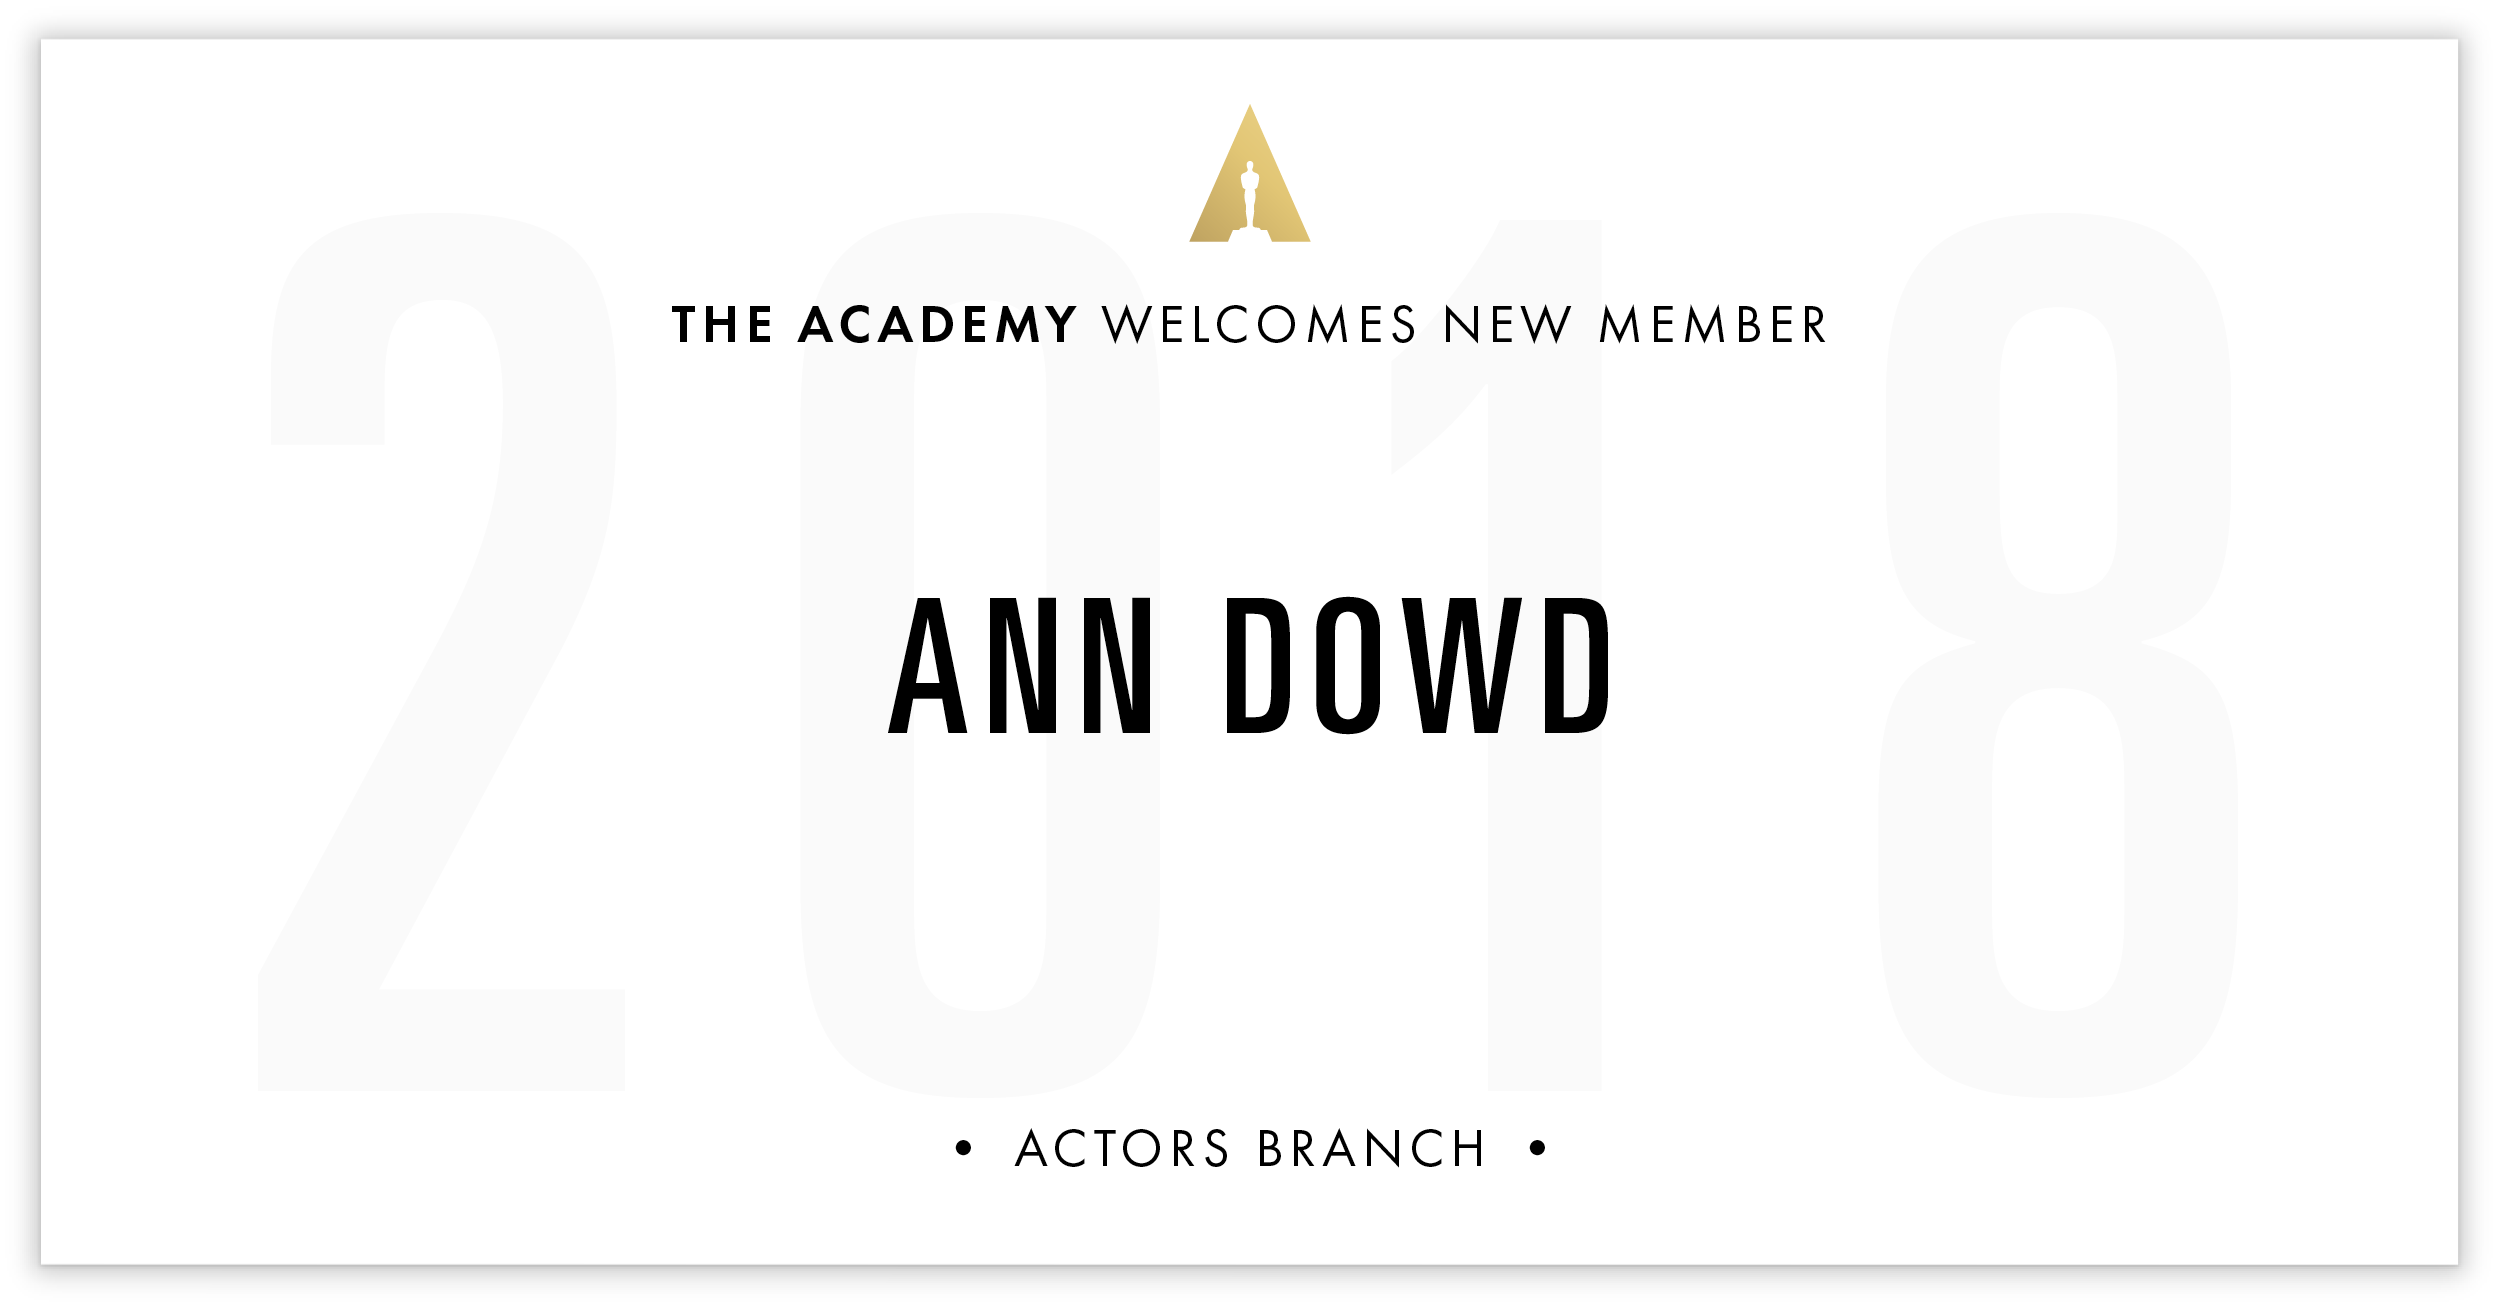 Ann Dowd is invited!